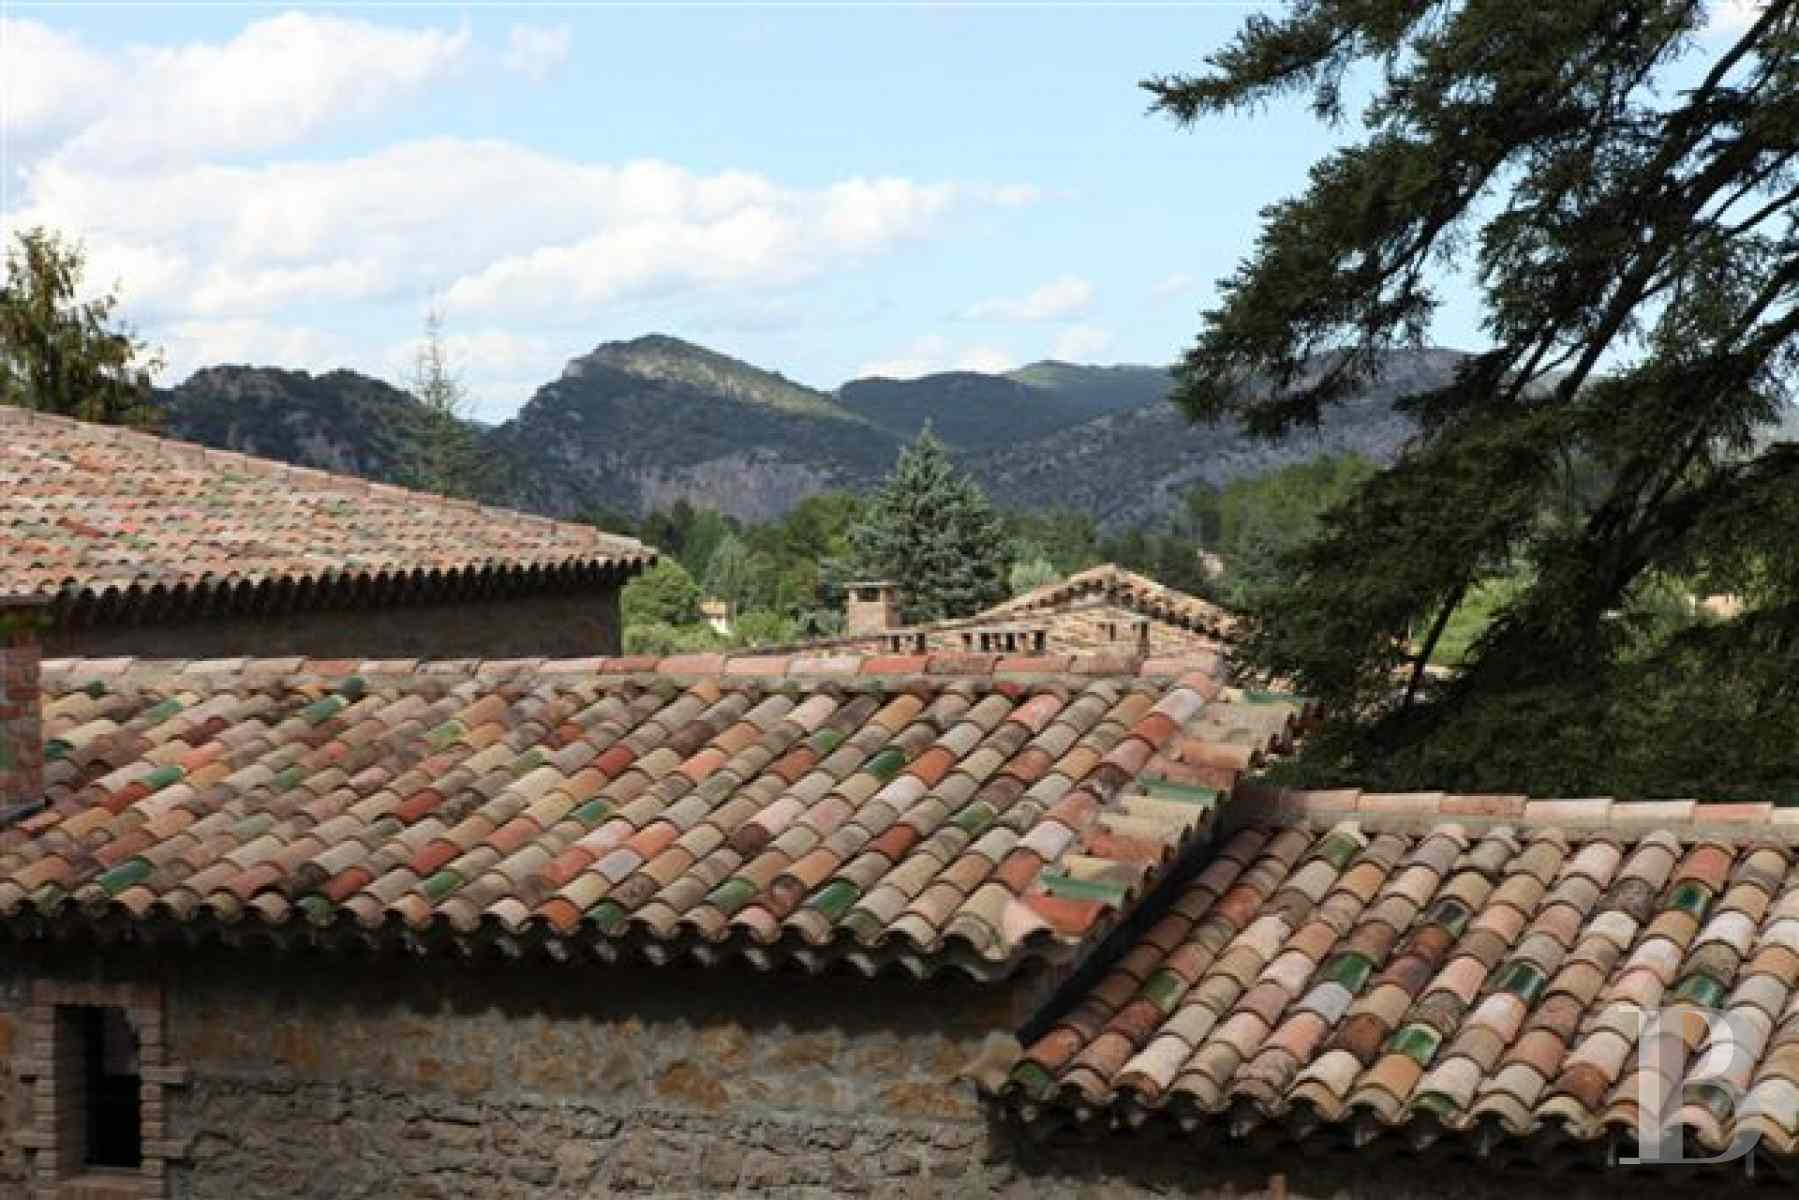 property for sale France languedoc roussillon property outbuildings - 5 zoom